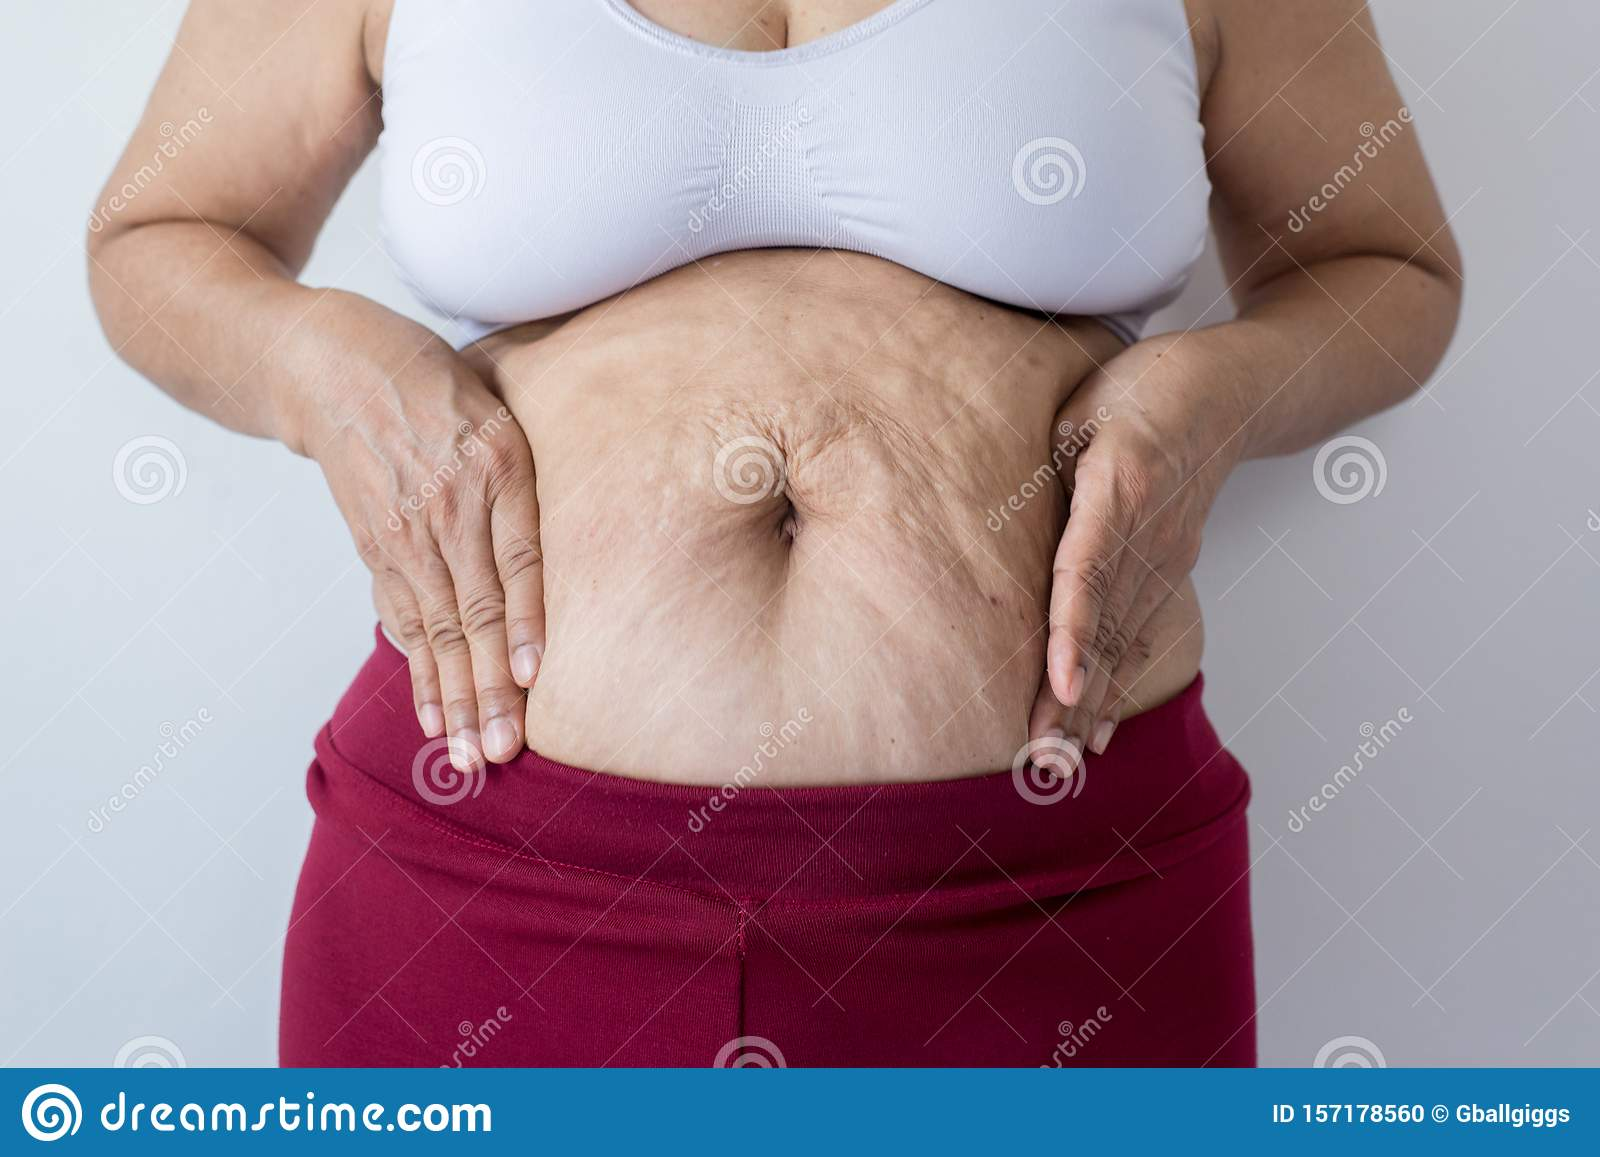 Overweight Senior Woman Pinching Her Fat Body Cellulite Squeezing Her Belly Fat Around Her Belly Button Healthy Lifestyle Concept Stock Photo Image Of Flabby Hand 157178560